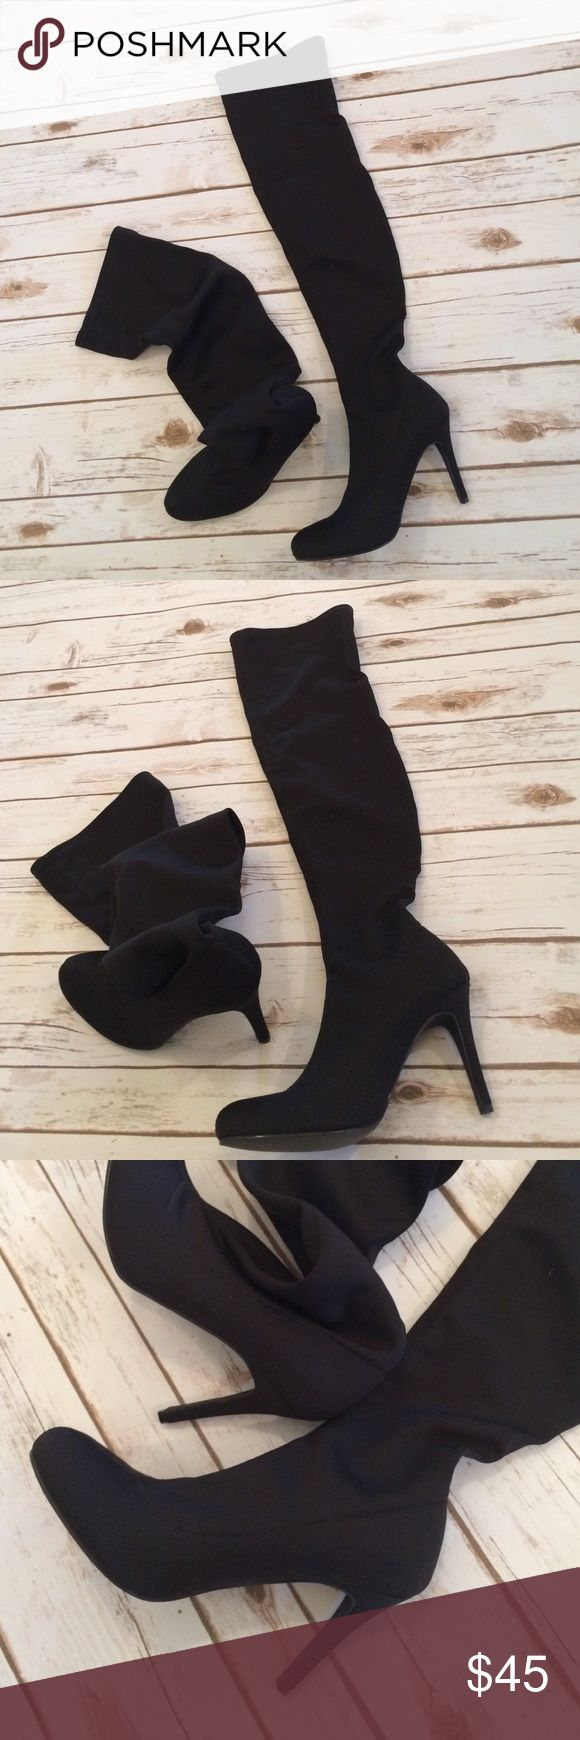 NEW Colin Stuart Thigh-high Stretch Boots From the Victoria's Secret catalog, these NEW stretch thigh-high boots are made of a thick Lycra stretch fabric. They are very comfortable and the fabric is very washable. The heels are about 4 inches. Colin Stuart Shoes Over the Knee Boots